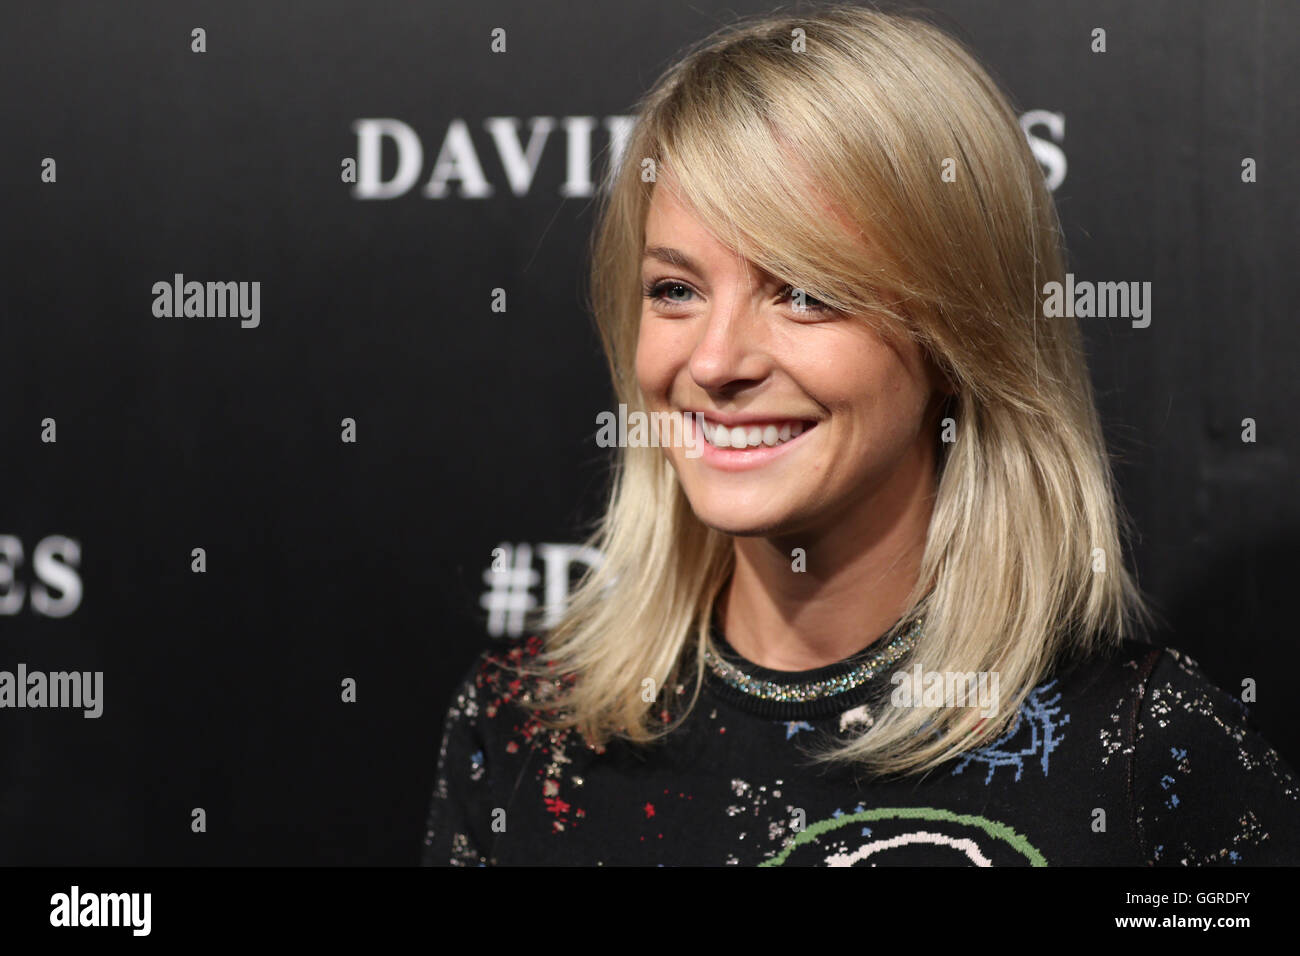 David Jones Spring Summer 2016 collections launch - celebrities arrive on the red (black) carpet - Nadia Fairfax. - Stock Image